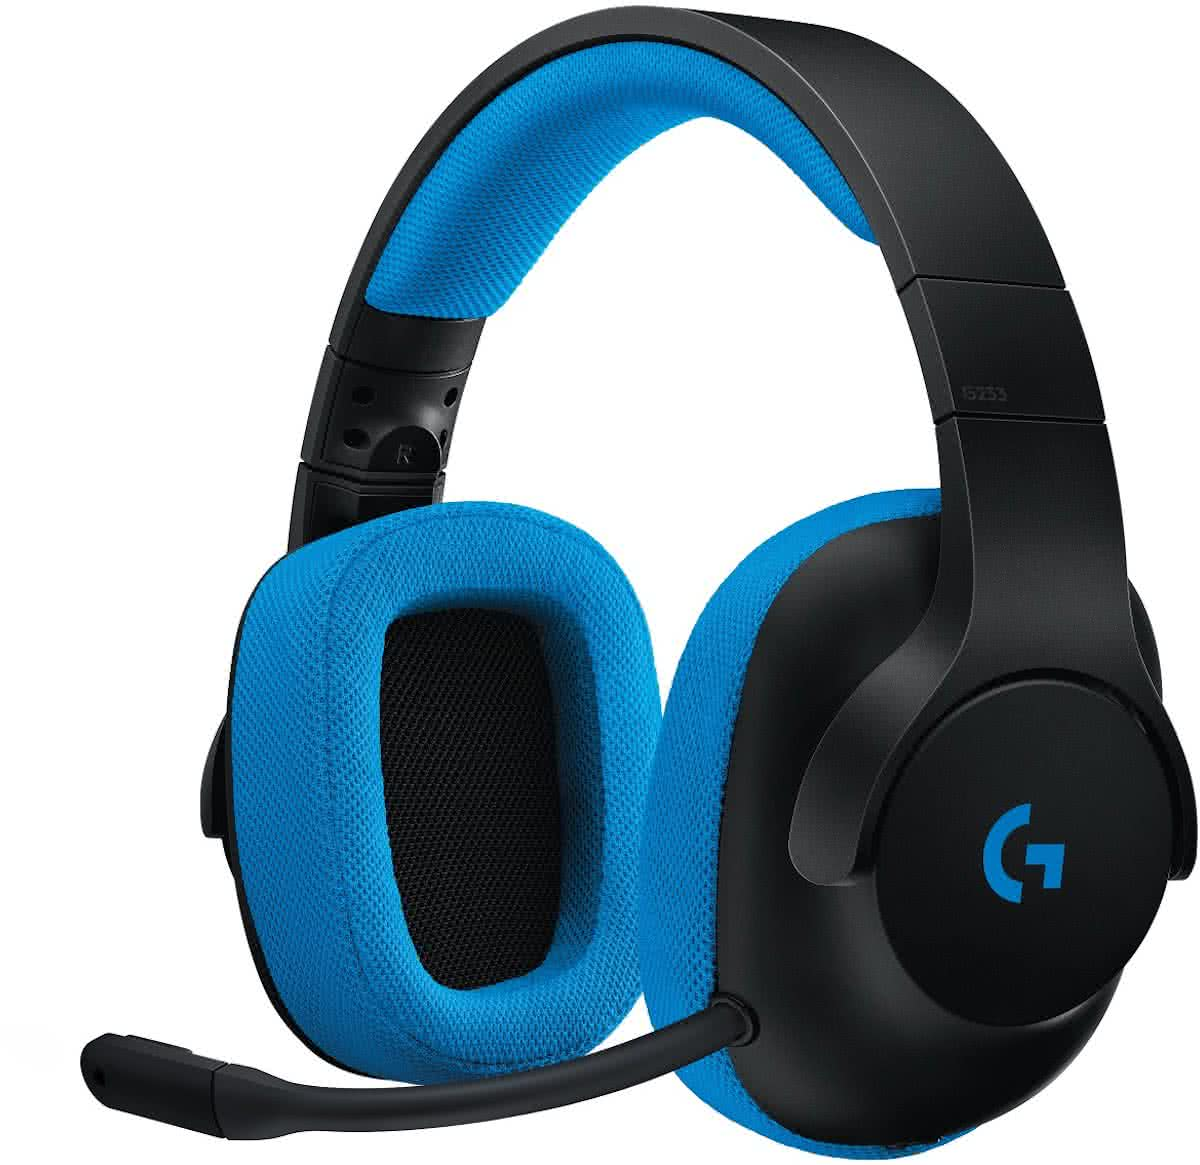 Logitech G233 - Prodigy Gaming Headset - Pc + PS4 + Xbox One + Nintendo Switch